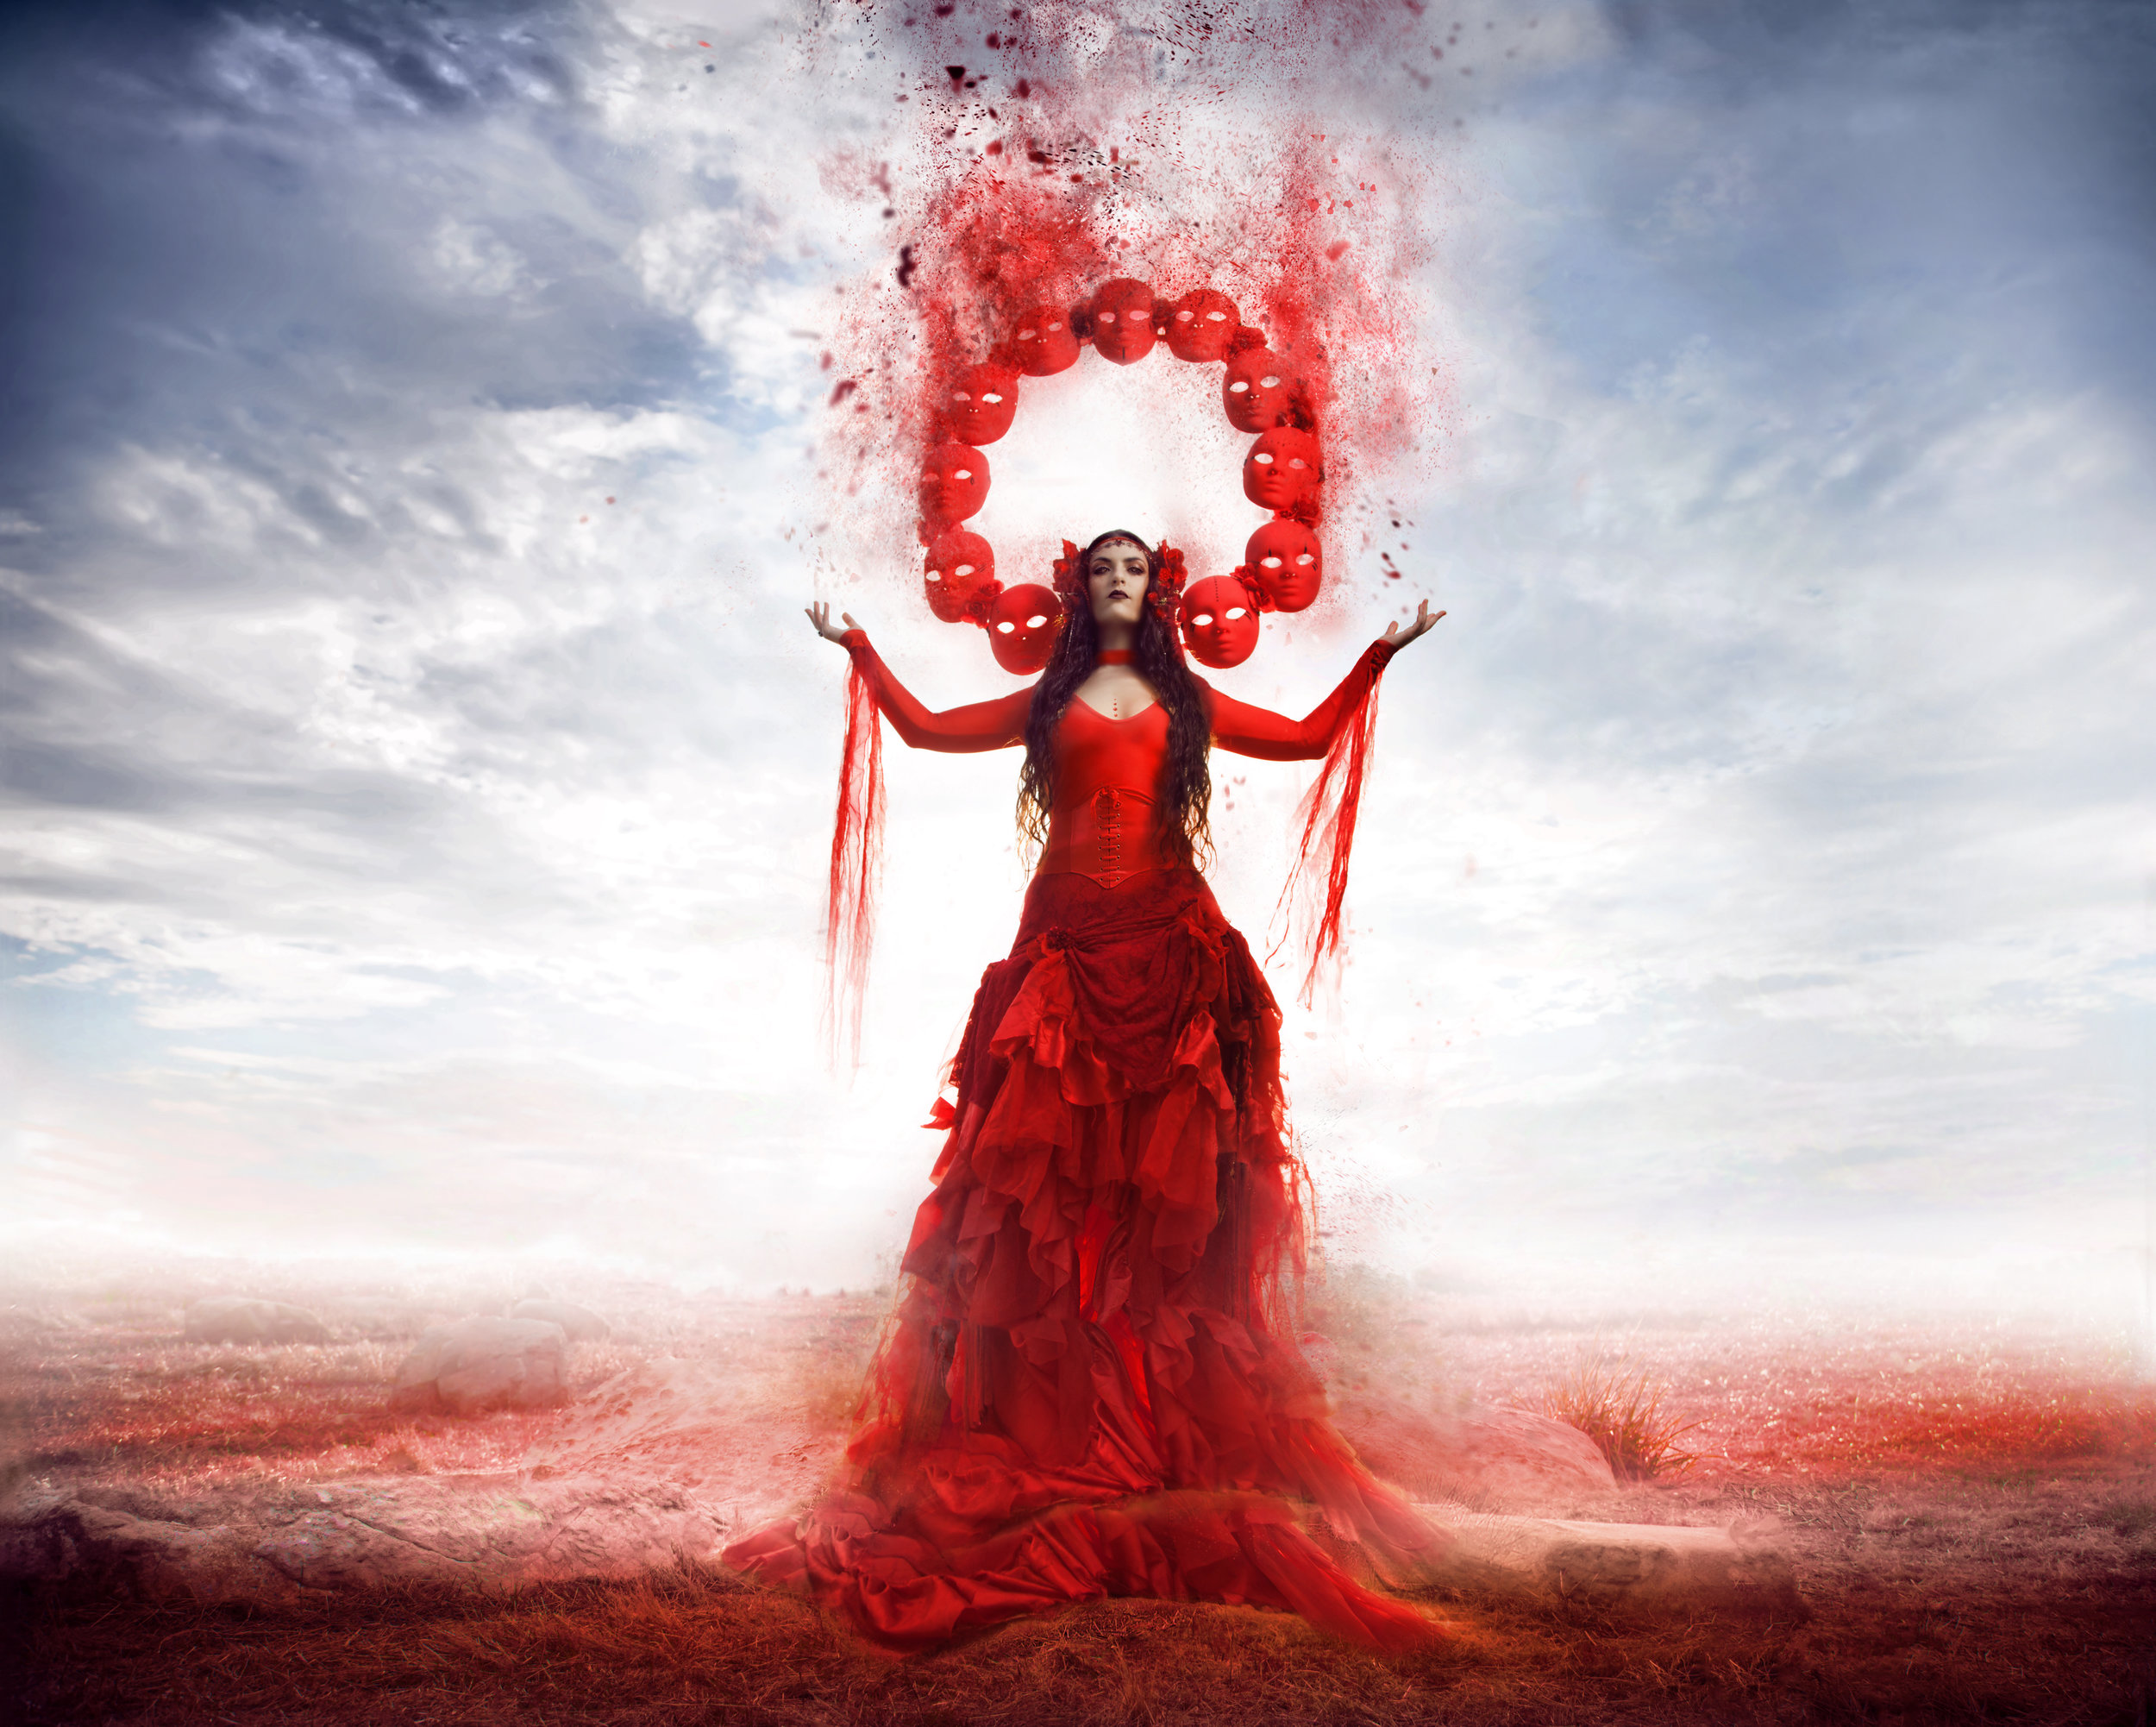 Marya_stark_lineage_ancestral_medicine_healing_red_lady_queen_ruby_blood_mysteries_scarlet_moon_pagan_witchy.jpg